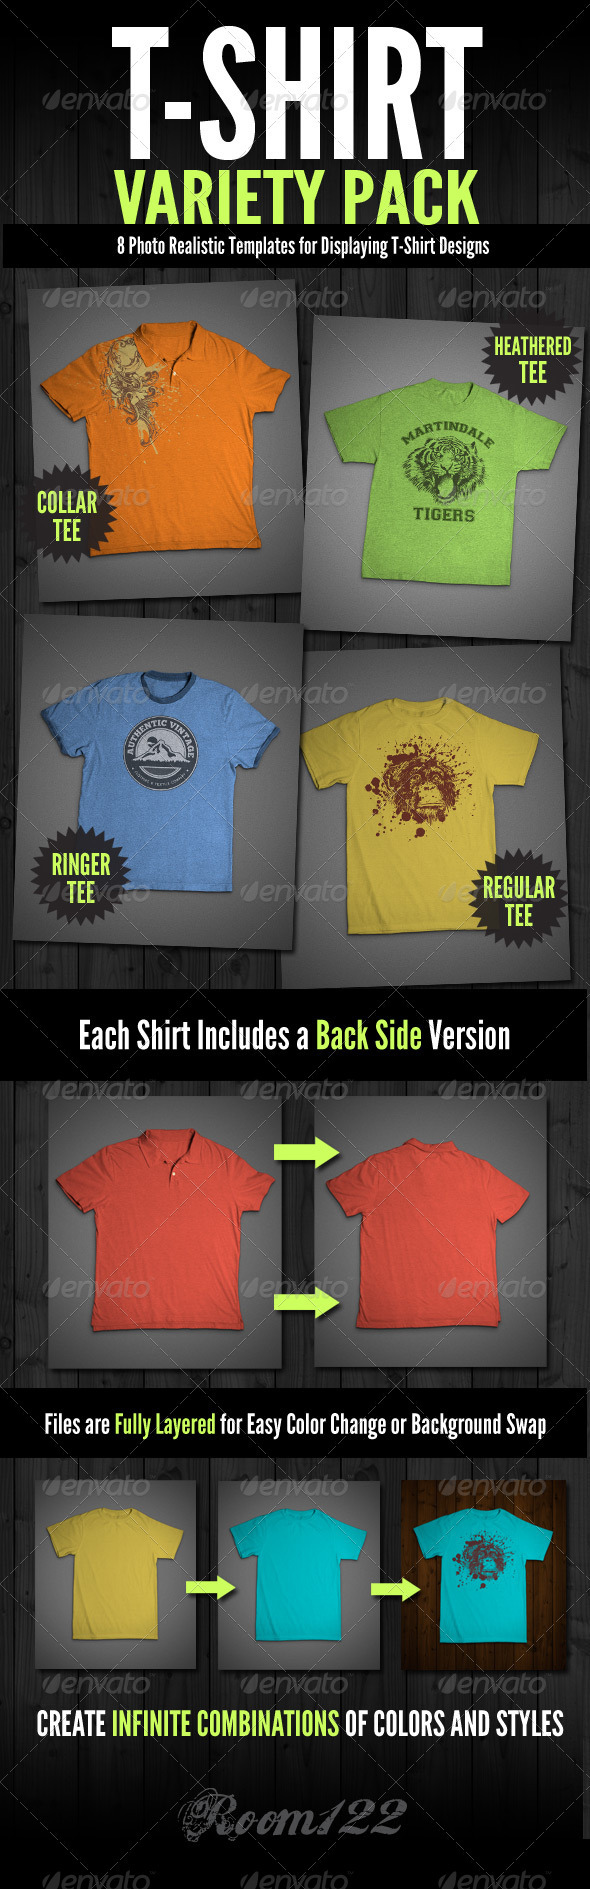 GraphicRiver T-Shirt Mock-Ups Variety Pack 1488618